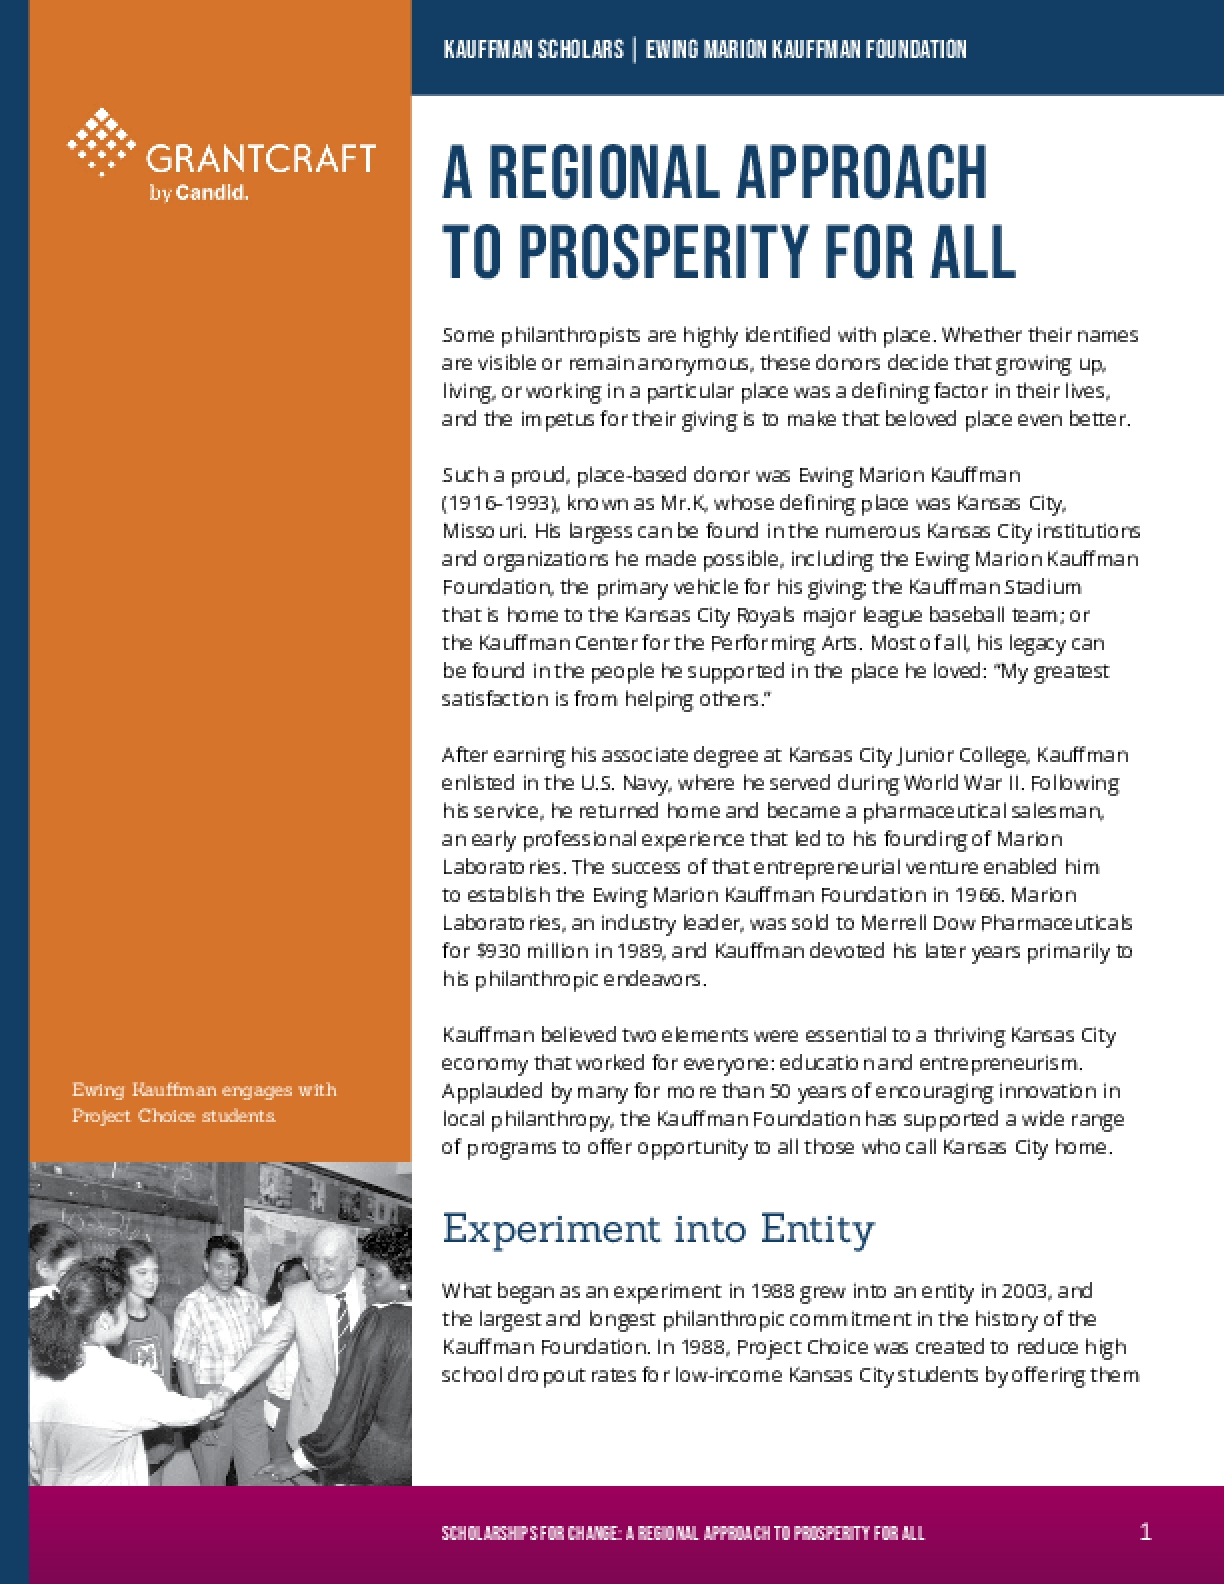 A Regional Approach to Prosperity for All